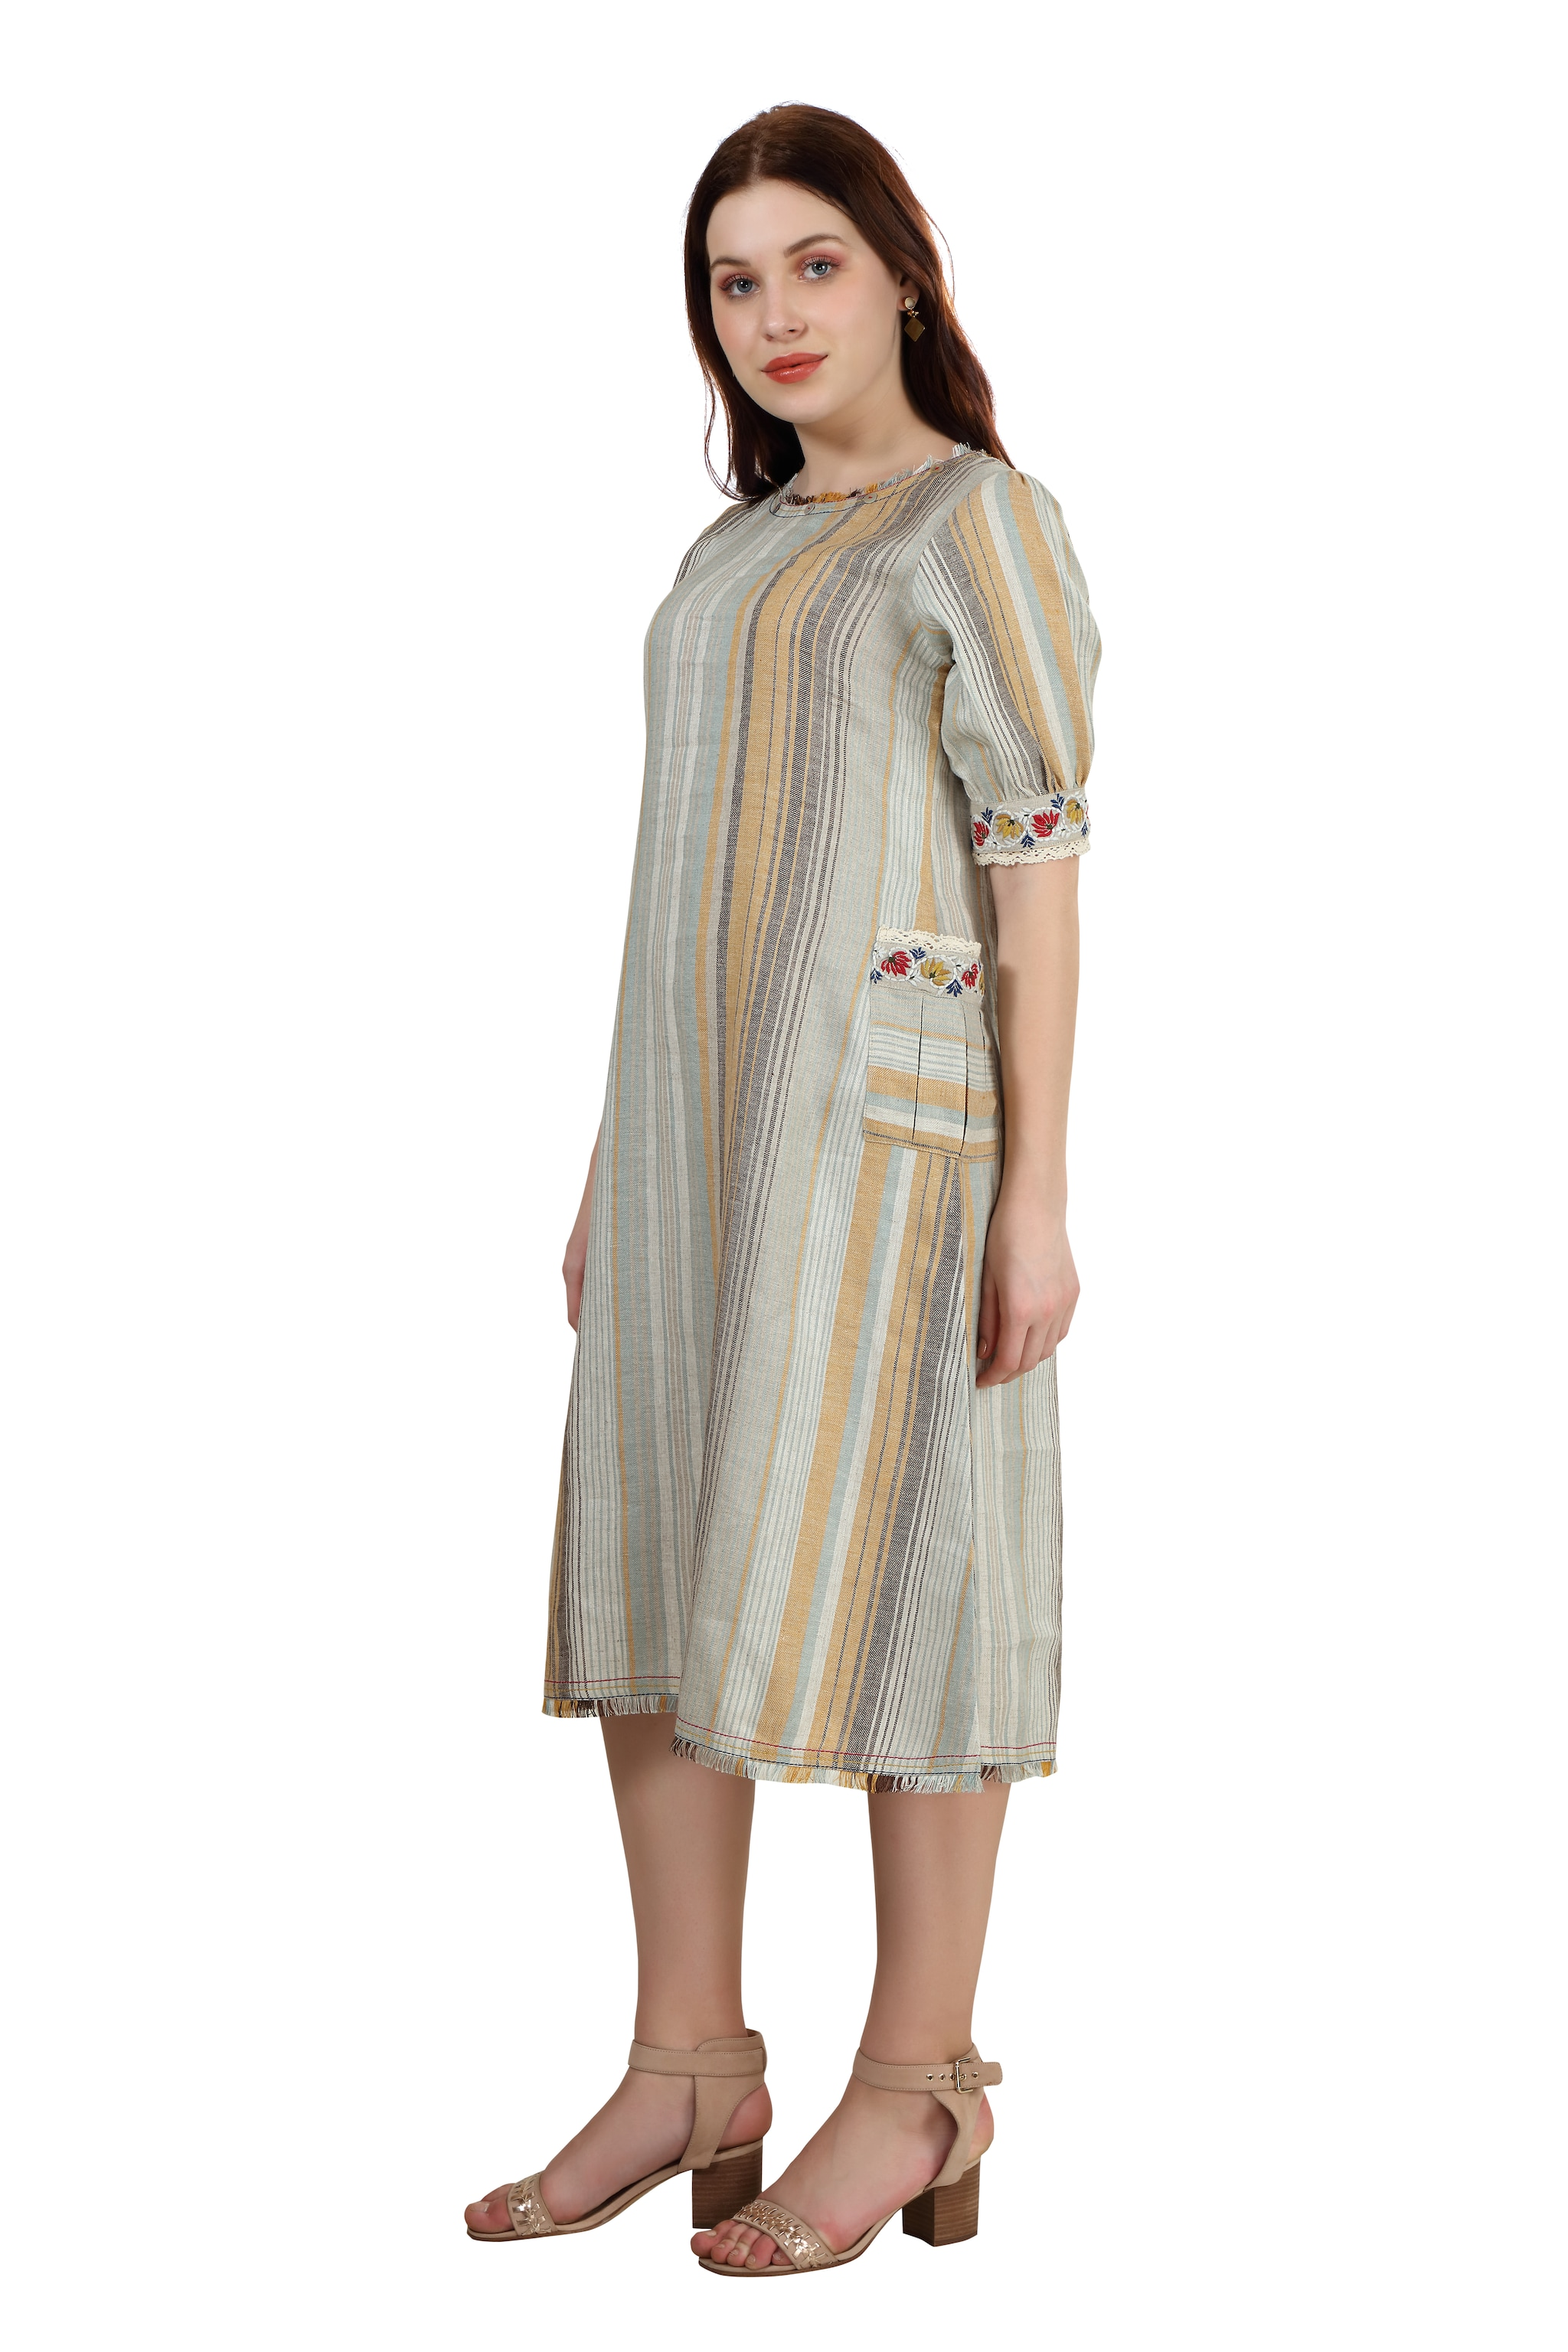 202029 Mustard Woven Striped Twin Pocket Linen Dress (XS,Mustard)